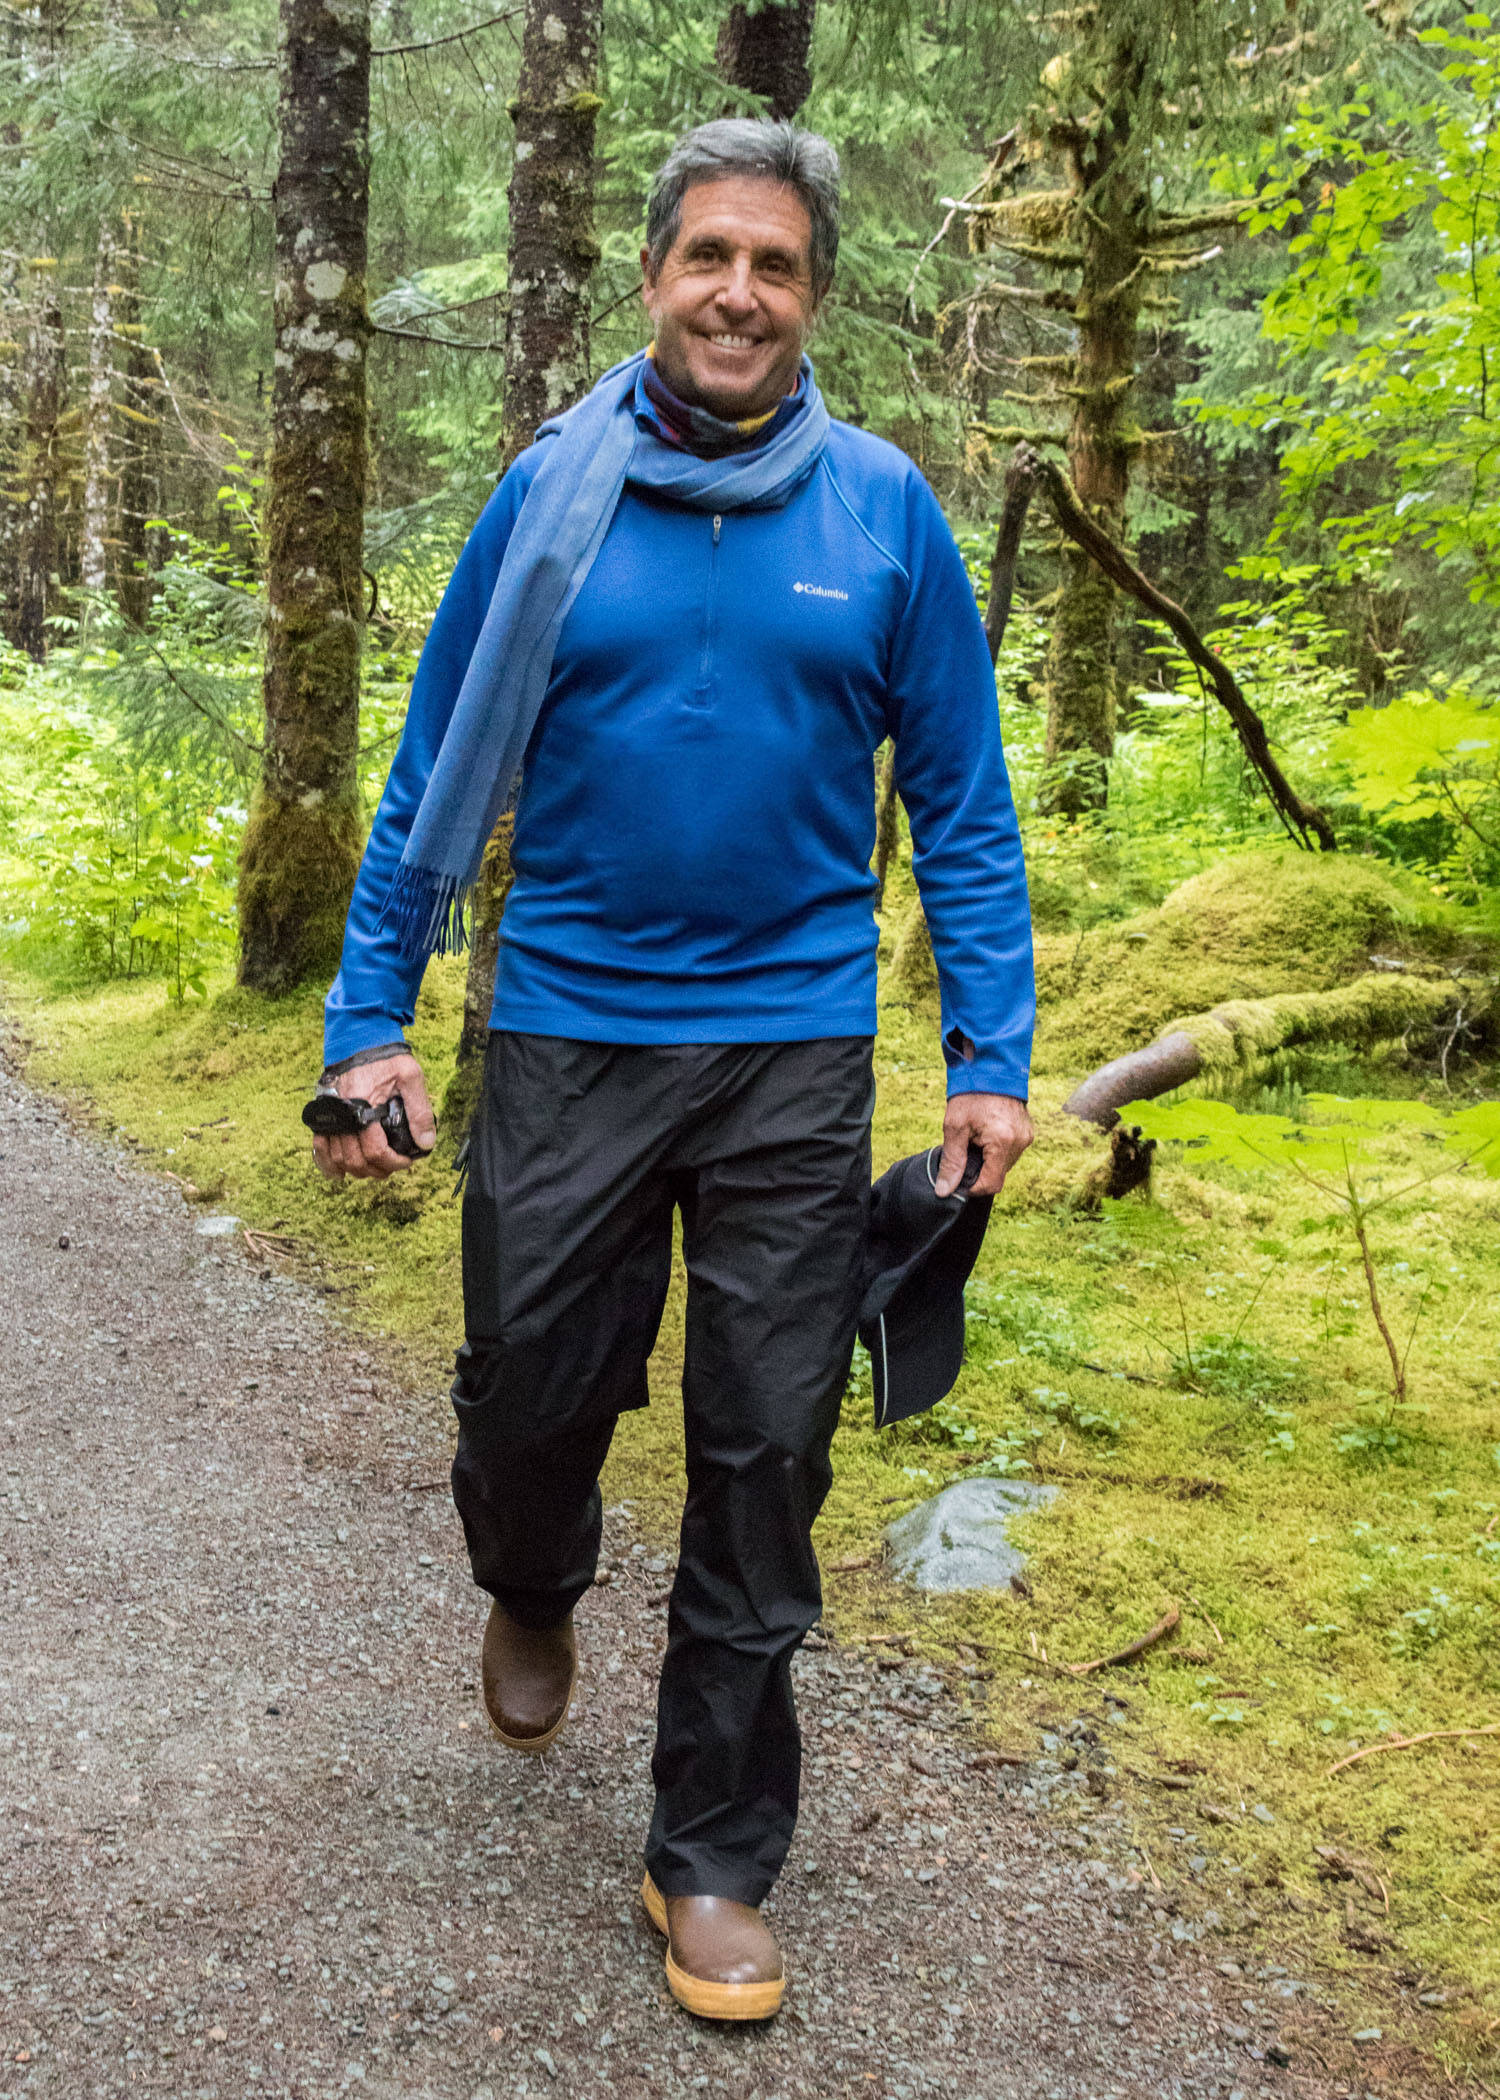 Oct. 21, 2018 Dirk Younkerman loves Alaska and has regularly visited and seasonally worked here since 1993. I ran into him on the trail on a rainy day where he was out enjoying the temperate rainforest. His practical clothes also looked smart—a royal blue Columbia fleece shirt, Kathmandu rain pants from New Zealand, Xtratufs, merino wool neck scarf and buff. An avid videographer, his most important accessories are his video camera and his ever-present smile, which reveals how much he enjoys Juneau.